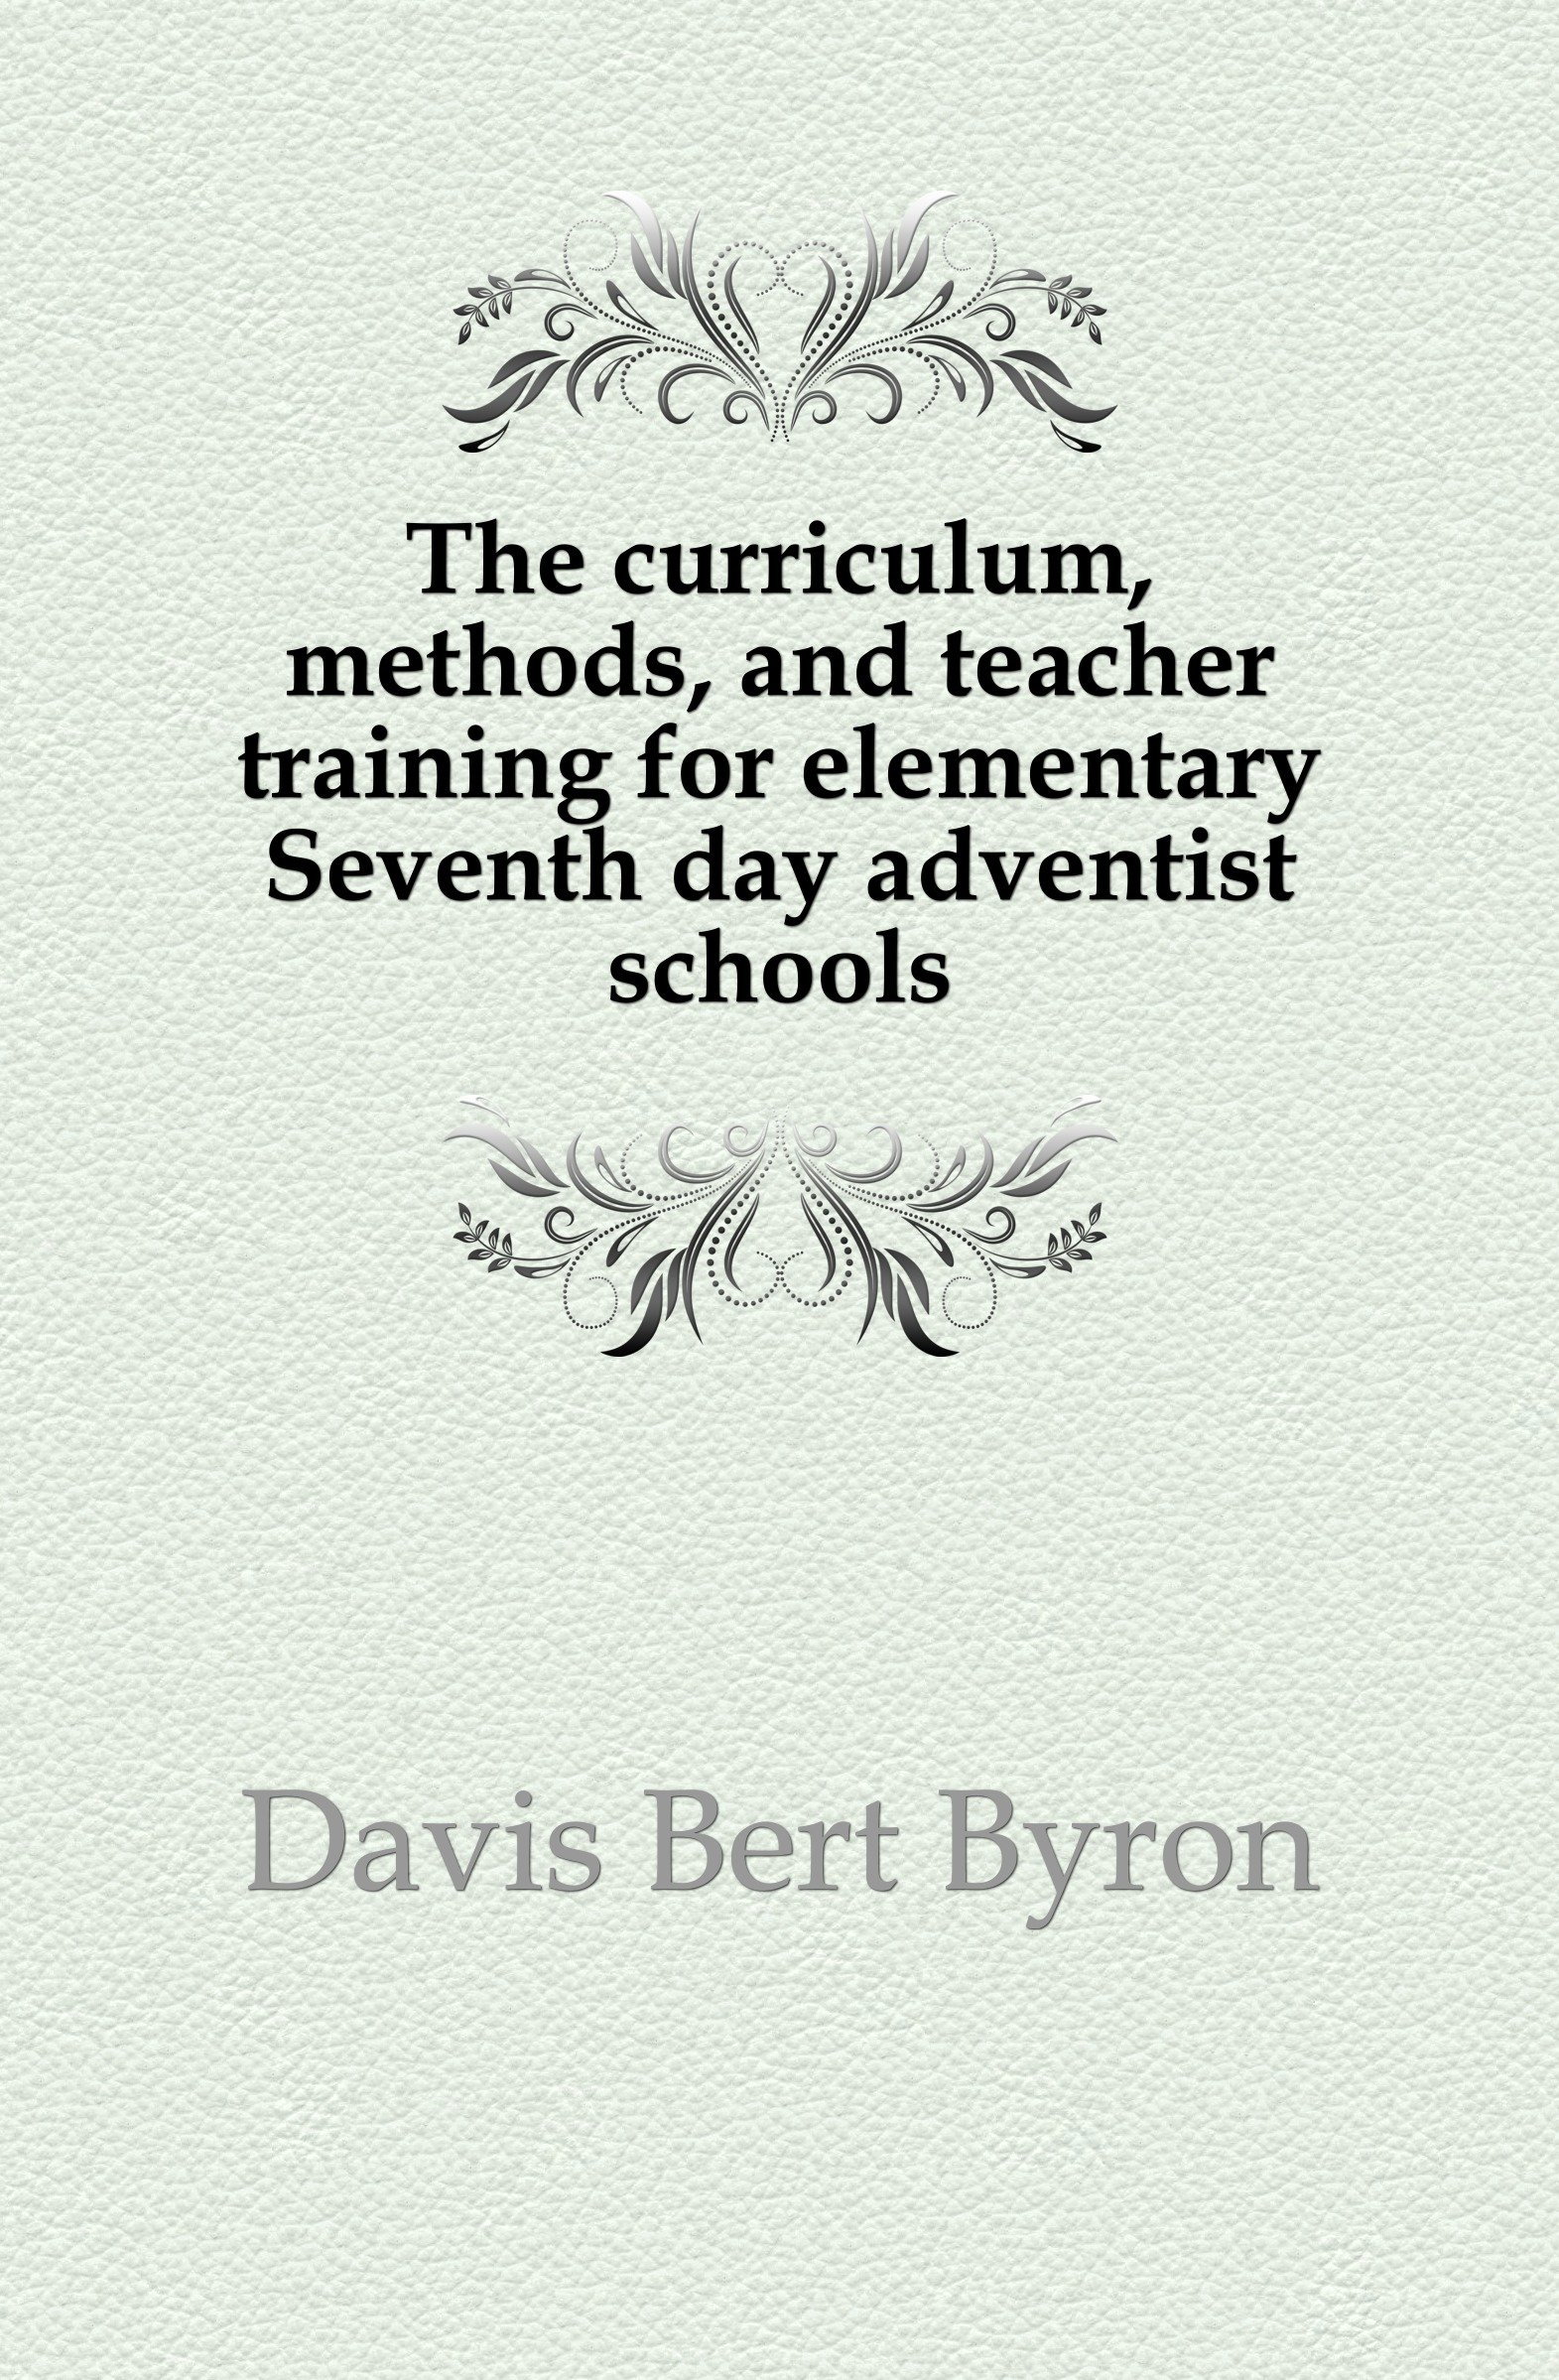 The curriculum, methods, and teacher training for elementary